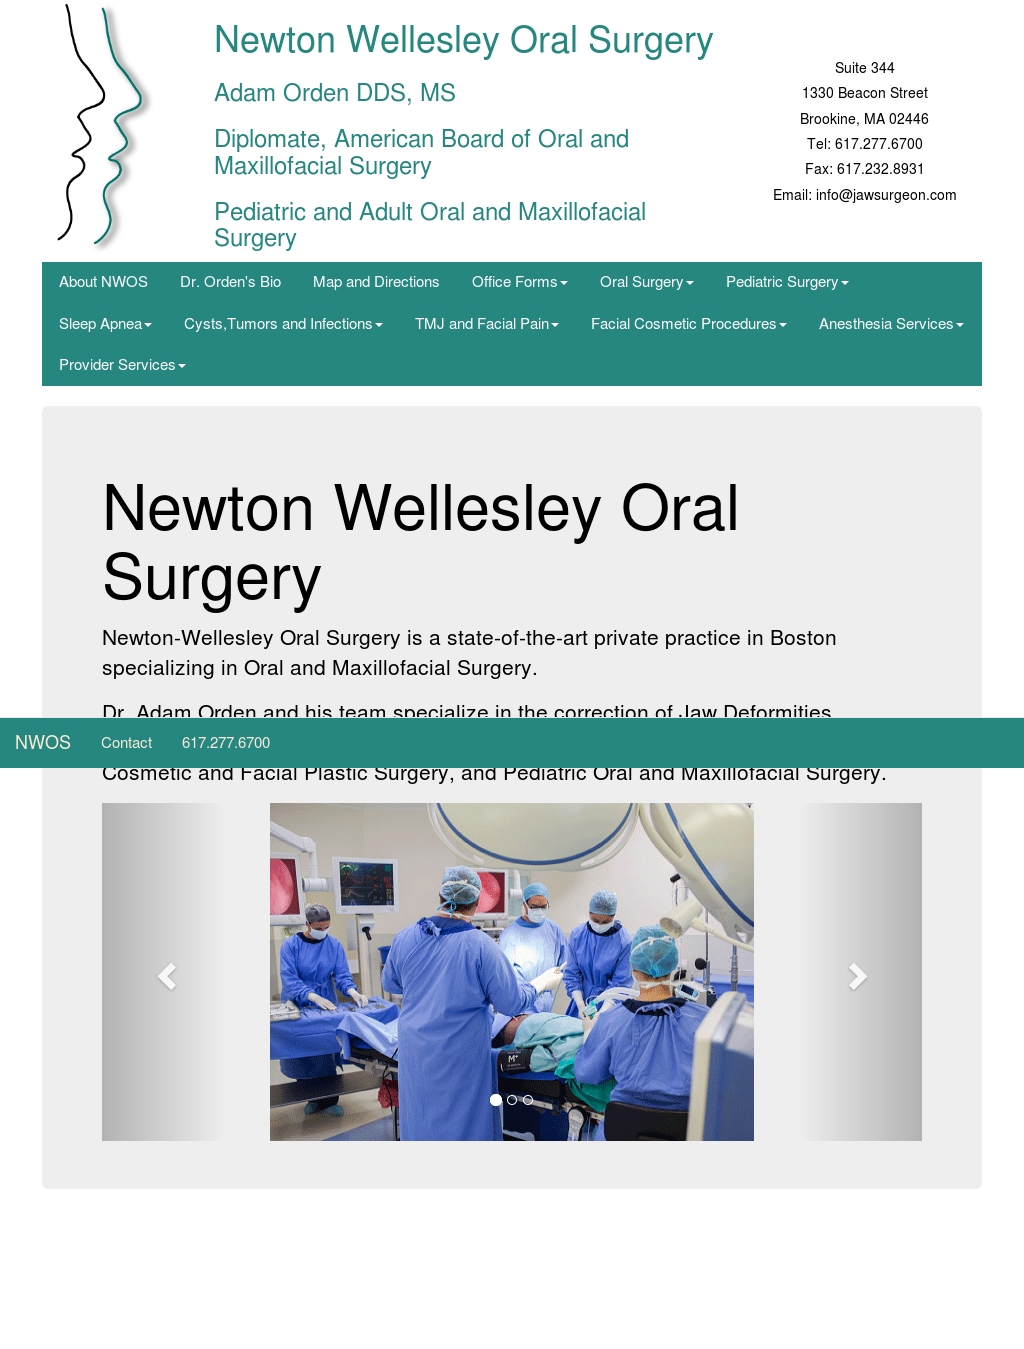 Newton Wellesley Oral Surgery Competitors, Revenue and Employees